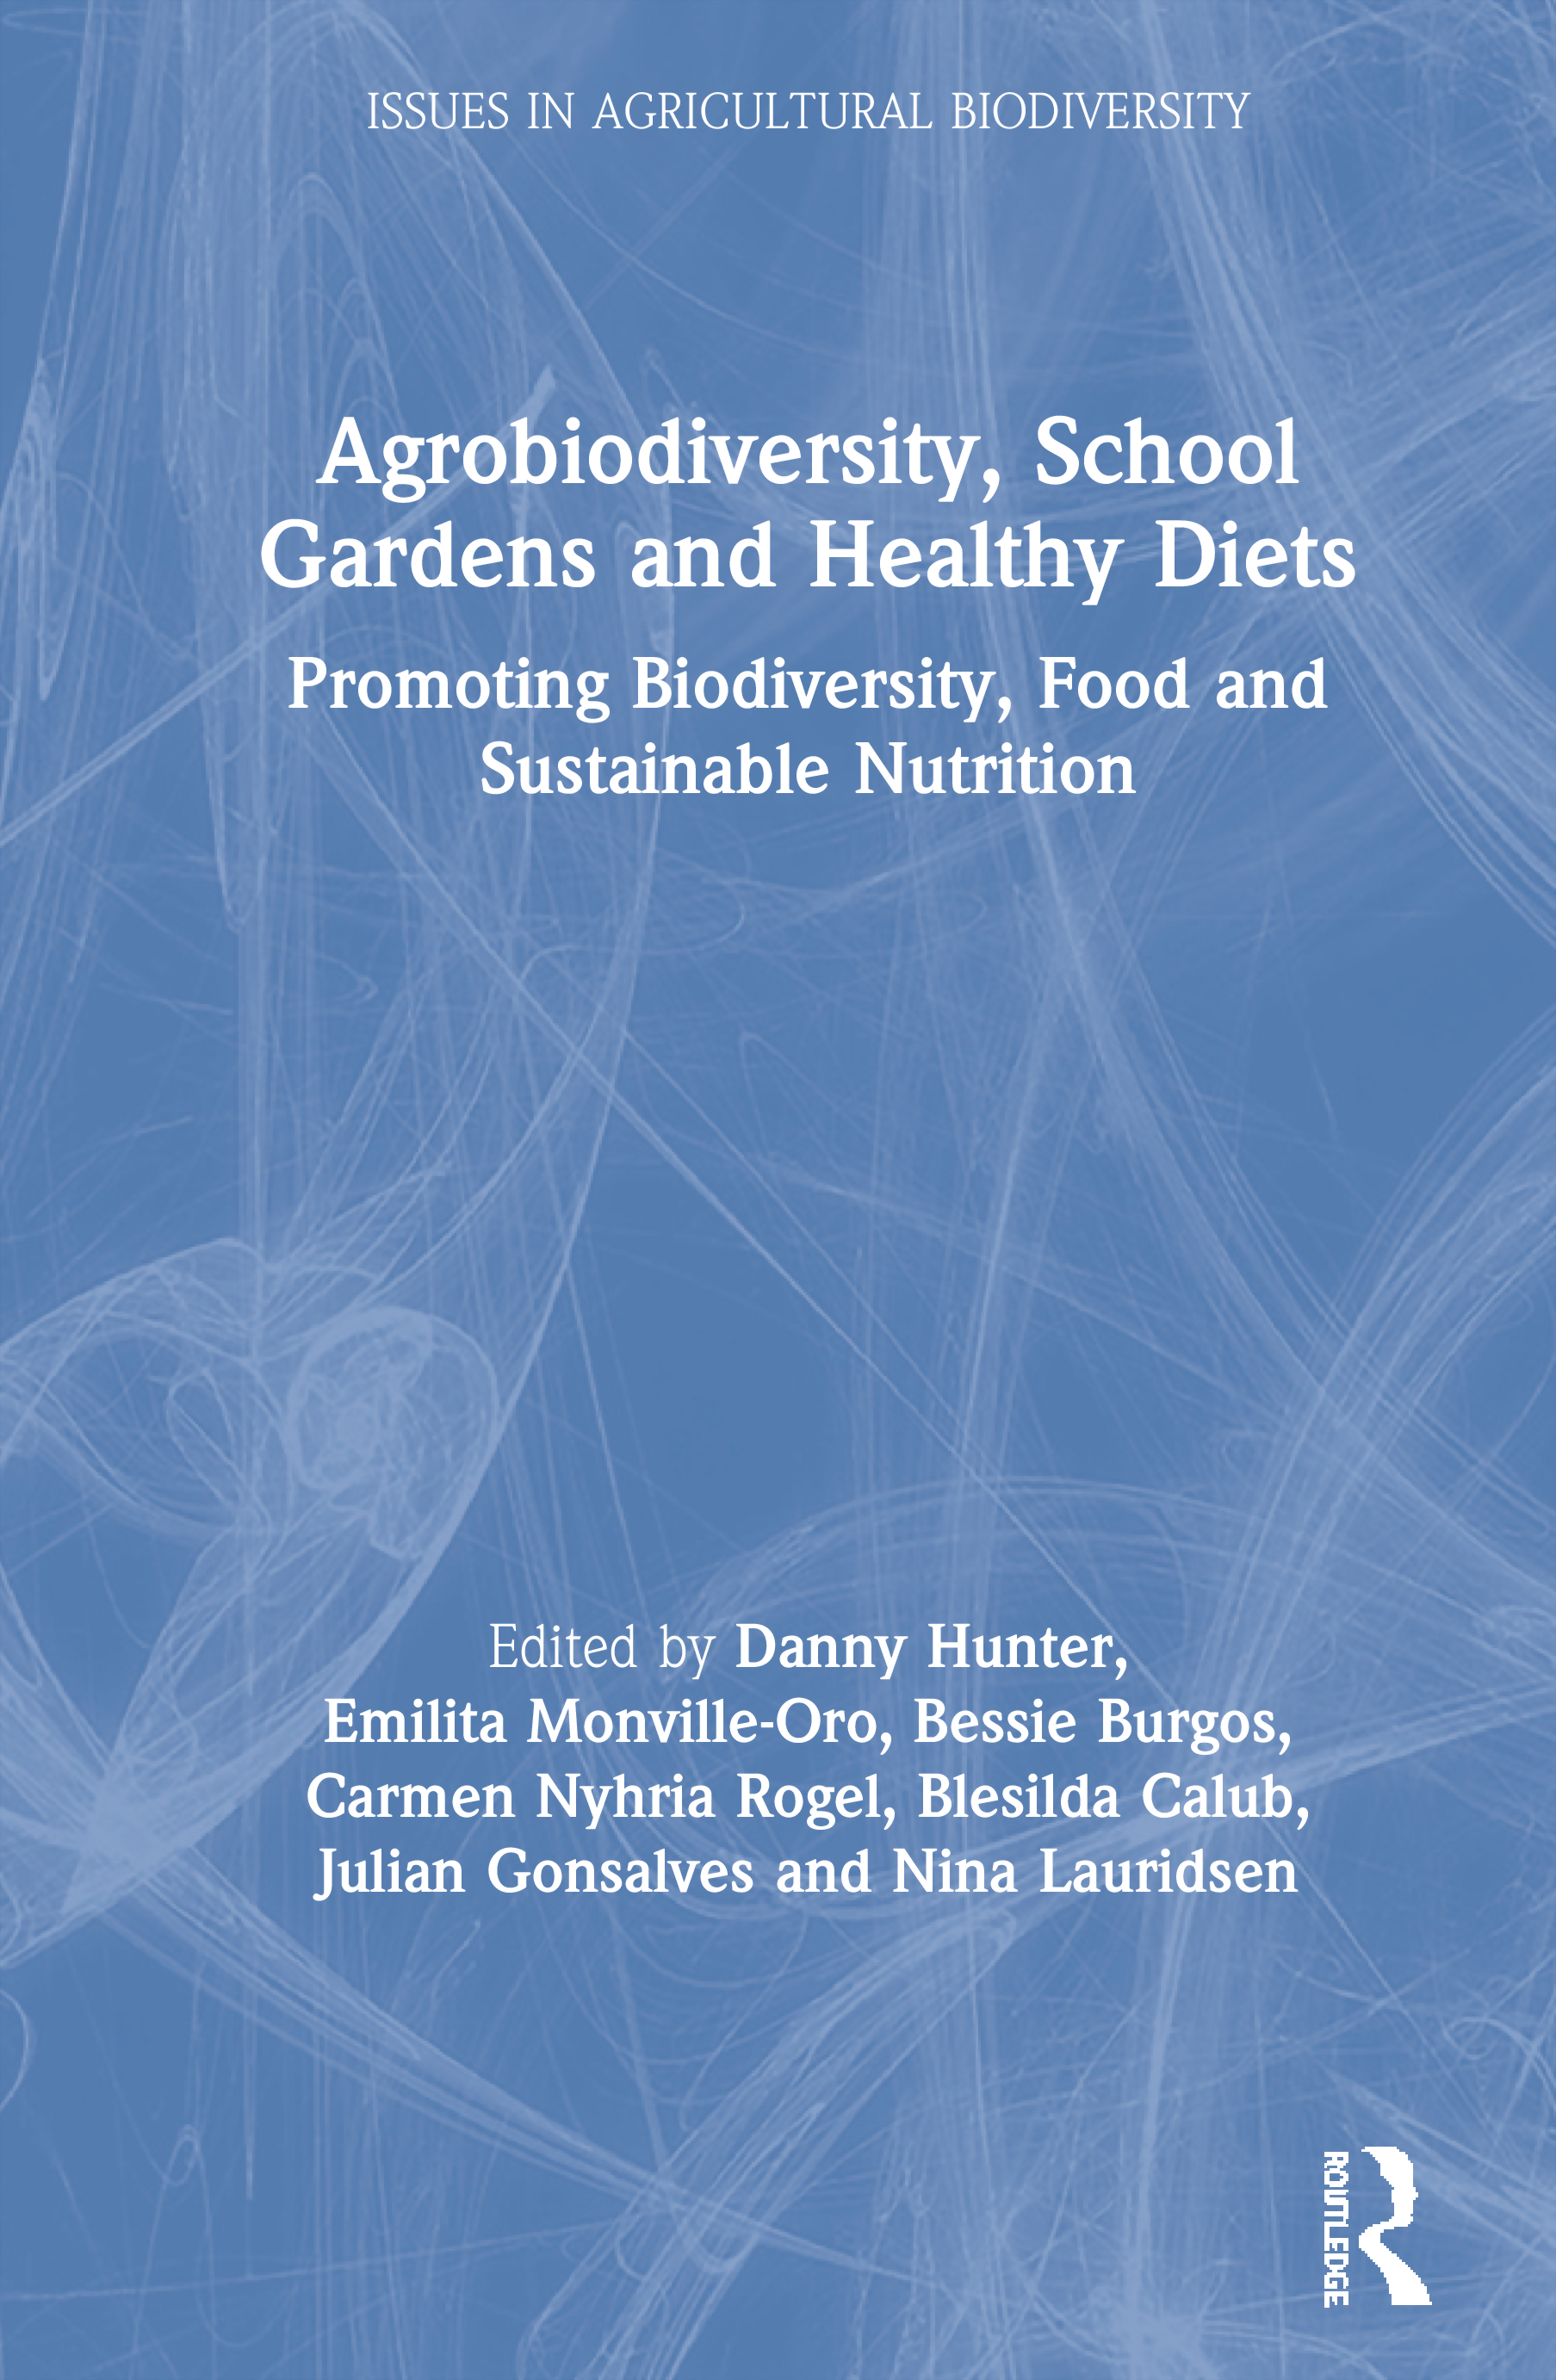 Agrobiodiversity, School Gardens and Healthy Diets: Promoting Biodiversity, Food and Sustainable Nutrition book cover